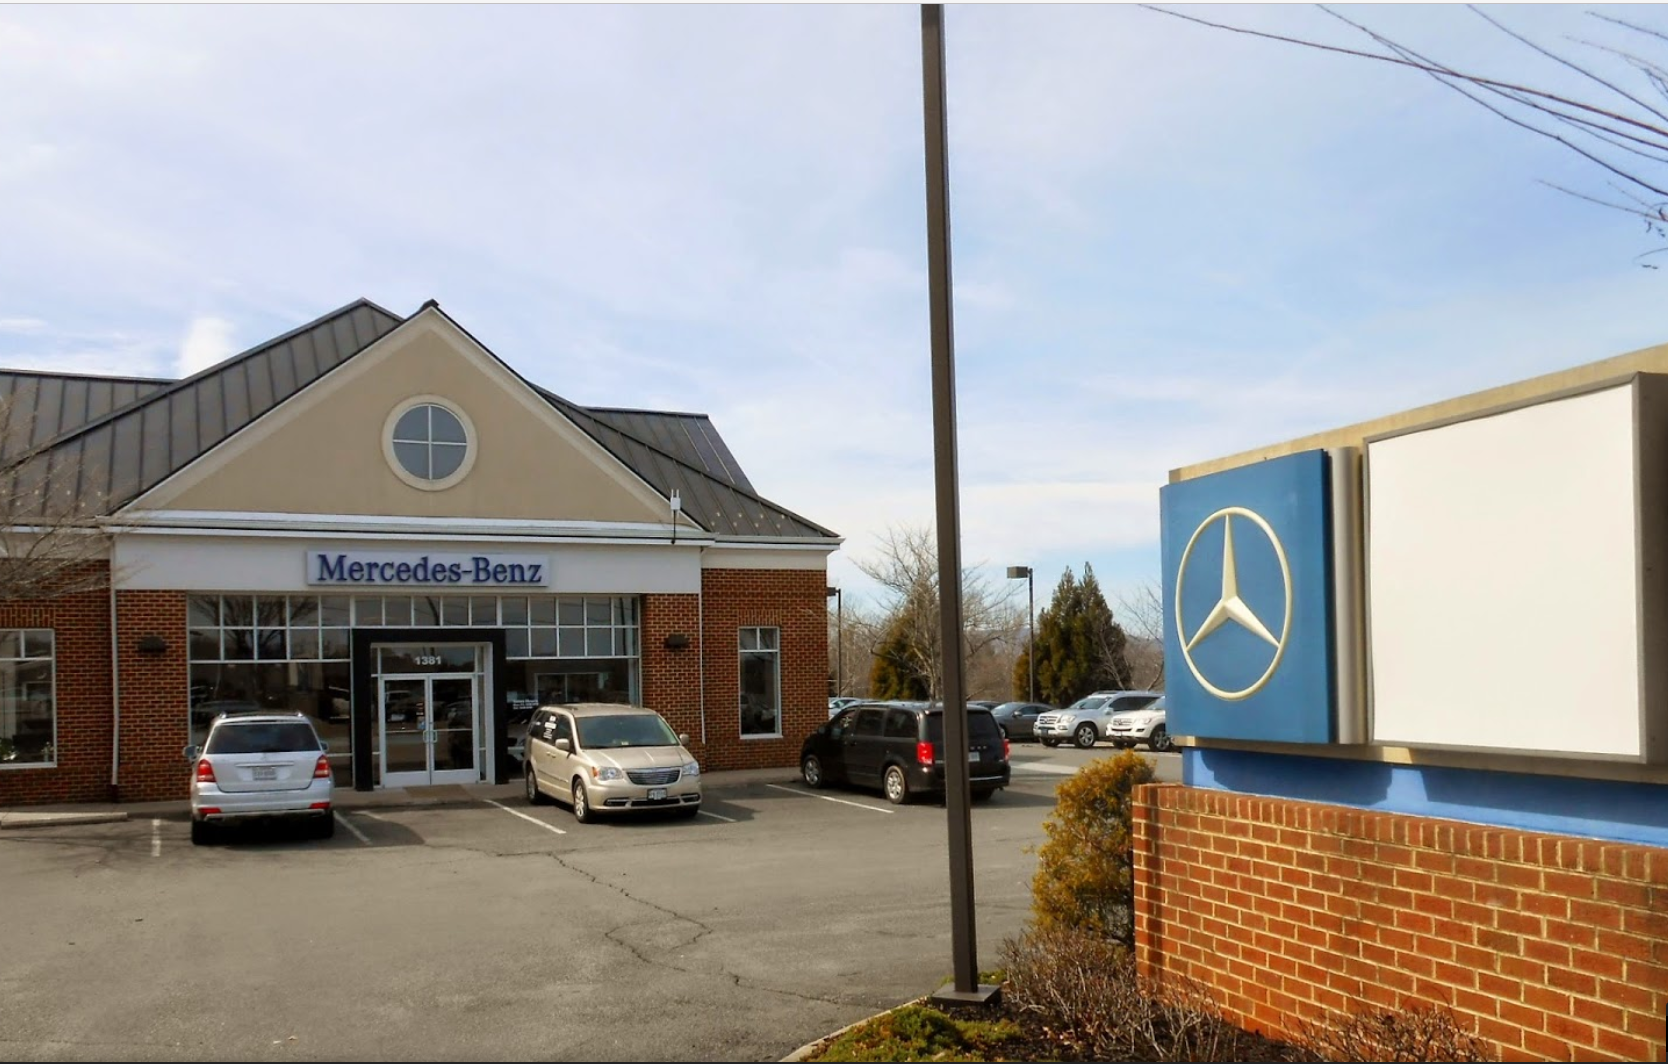 Marvelous Mercedes Benz Dealership Near Me In Charlottesville Va